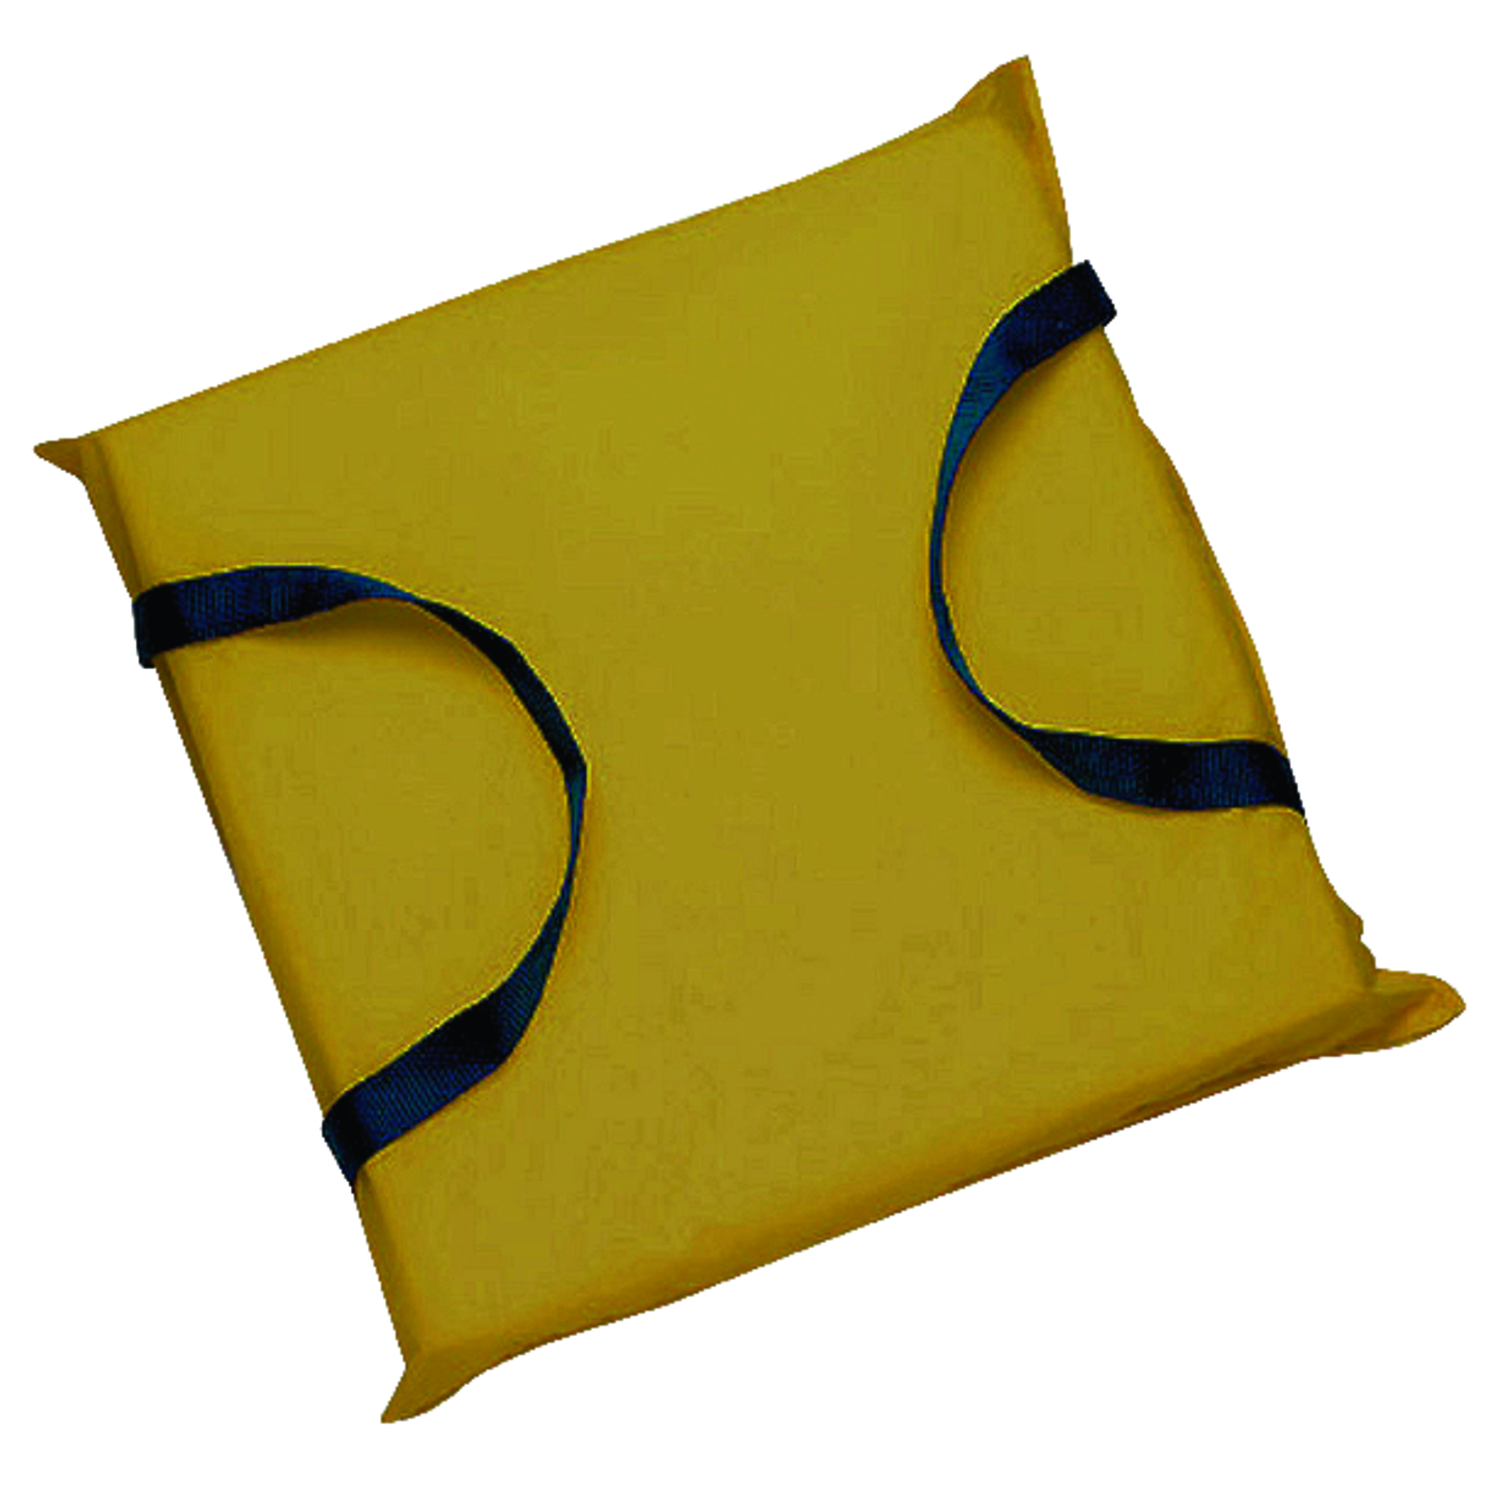 Seachoice  Foam  Boat Floatation Throw Cushion  1